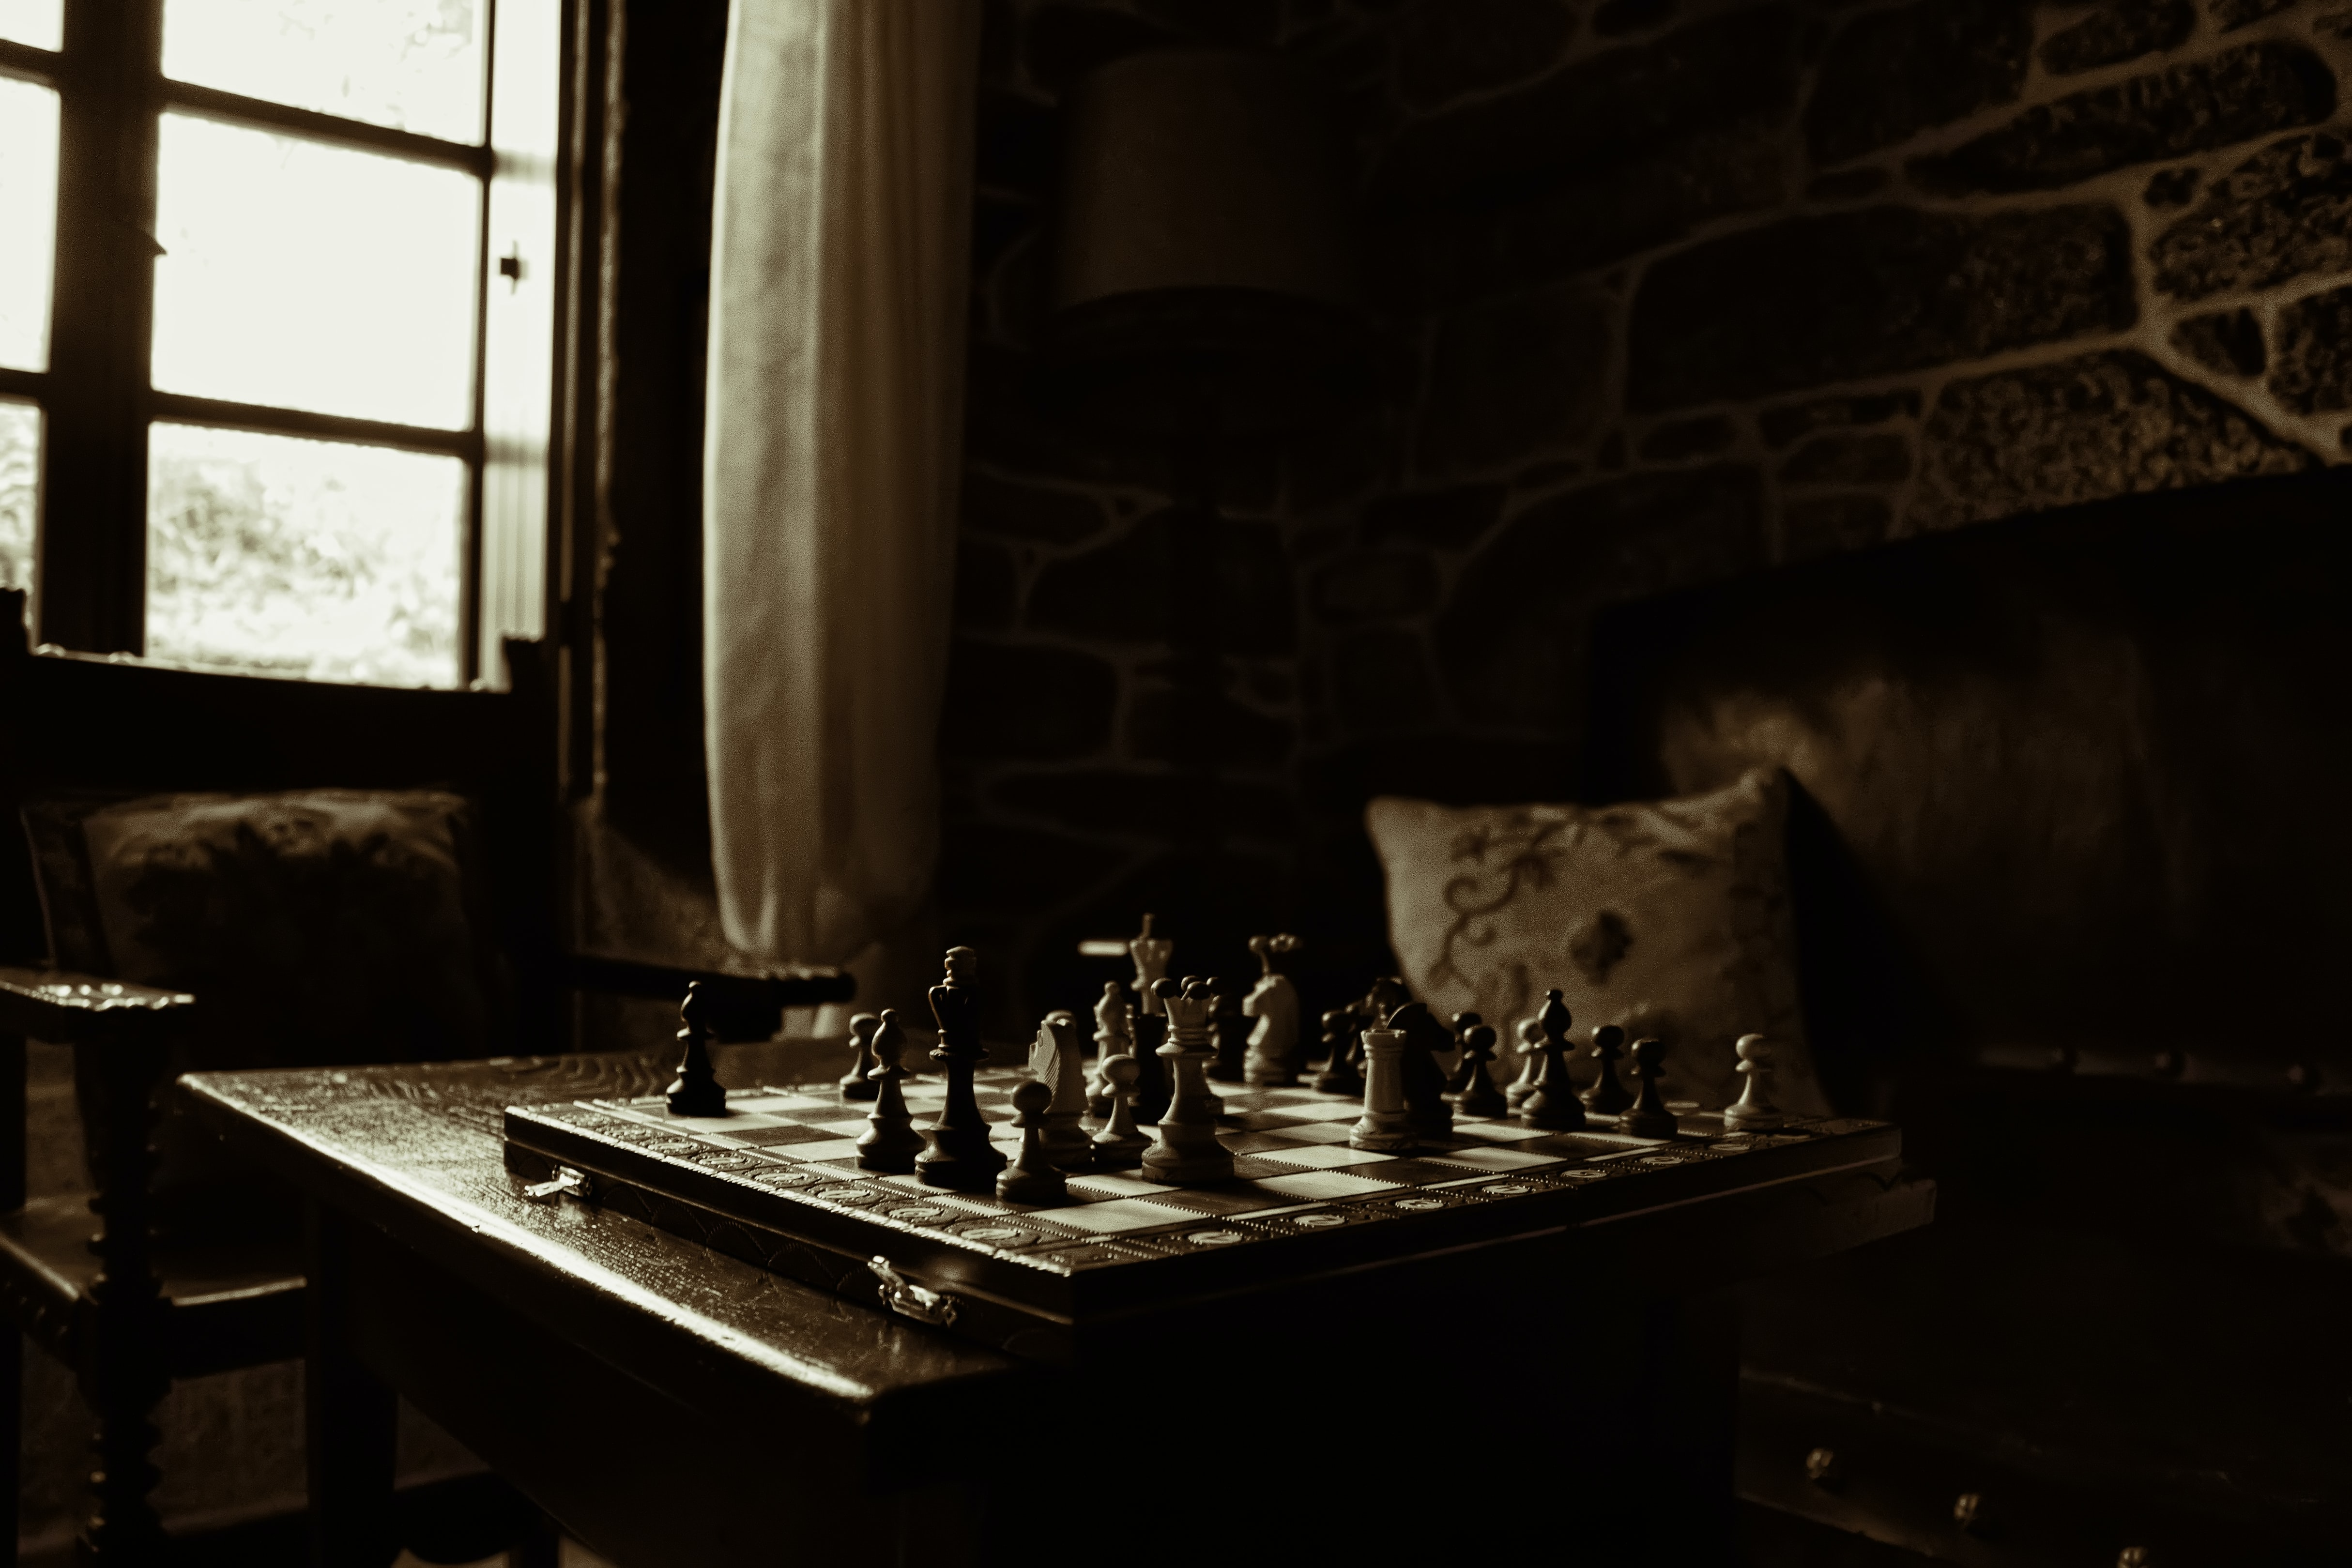 Chess pieces on a board in a dark room